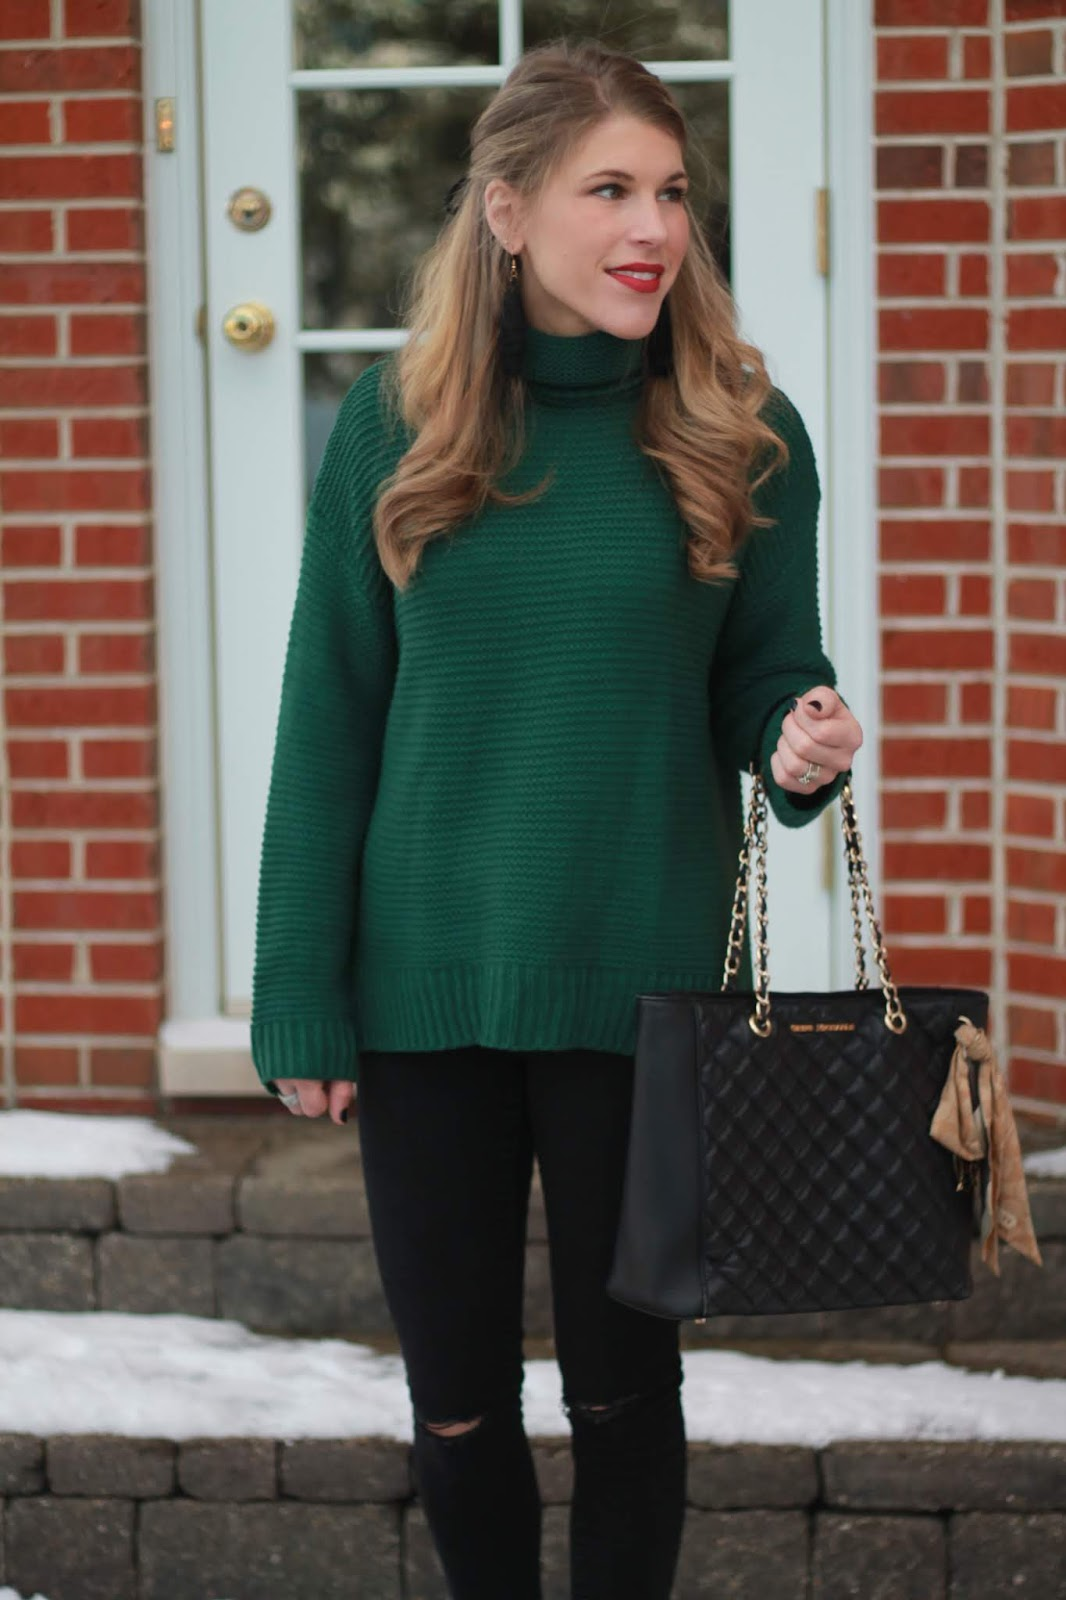 green turtleneck sweater, distressed black jeans, Steve madden black booties, black leather quilted tote,